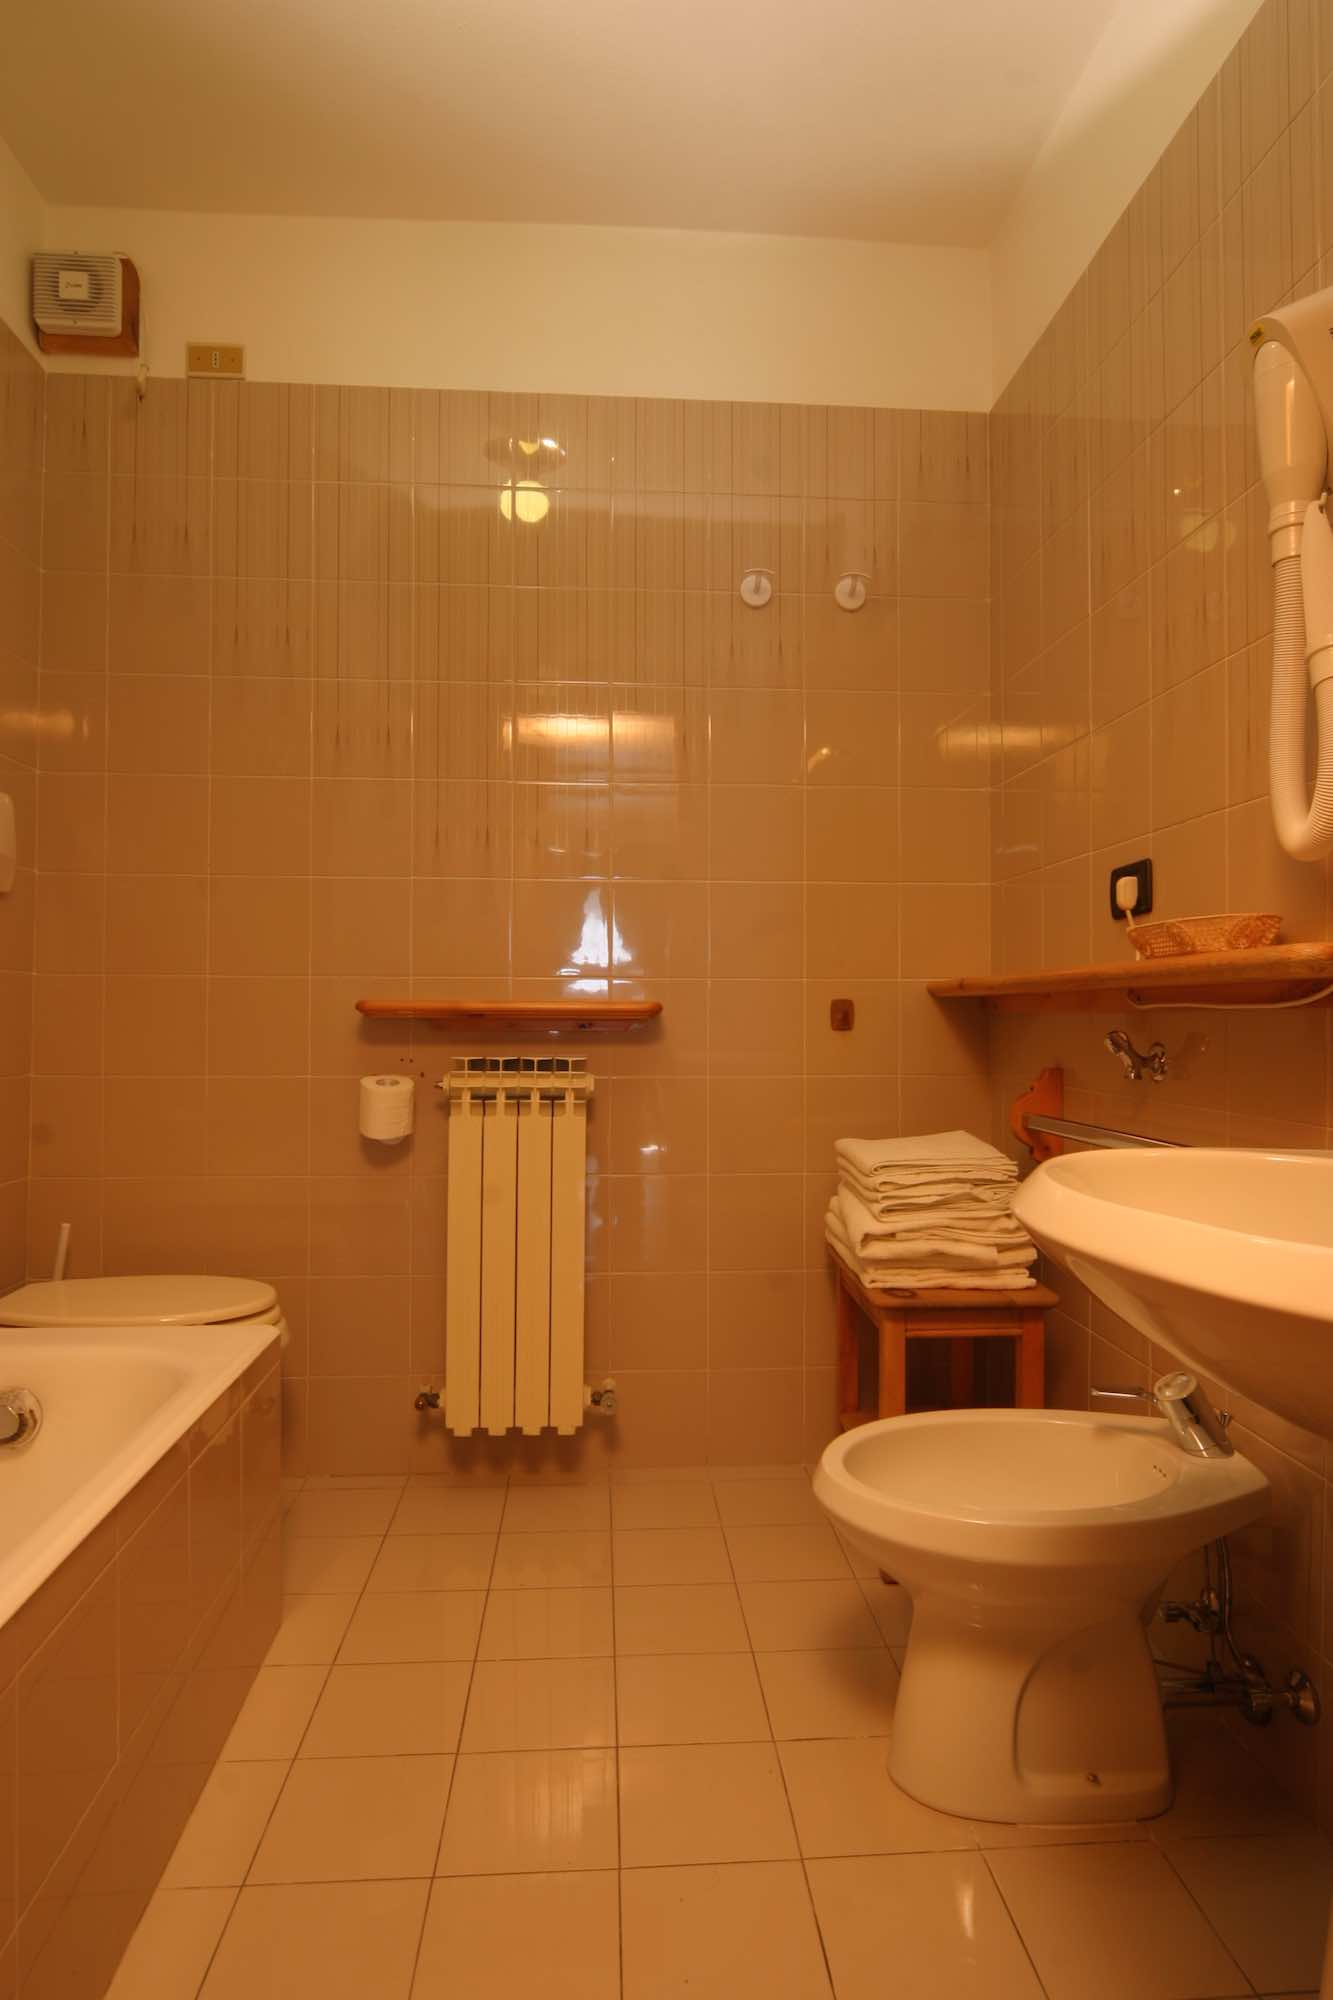 Bait da Borch - Via Saroch N.1430/f, Livigno 23041 - Apartment - Appartamento Eira 4